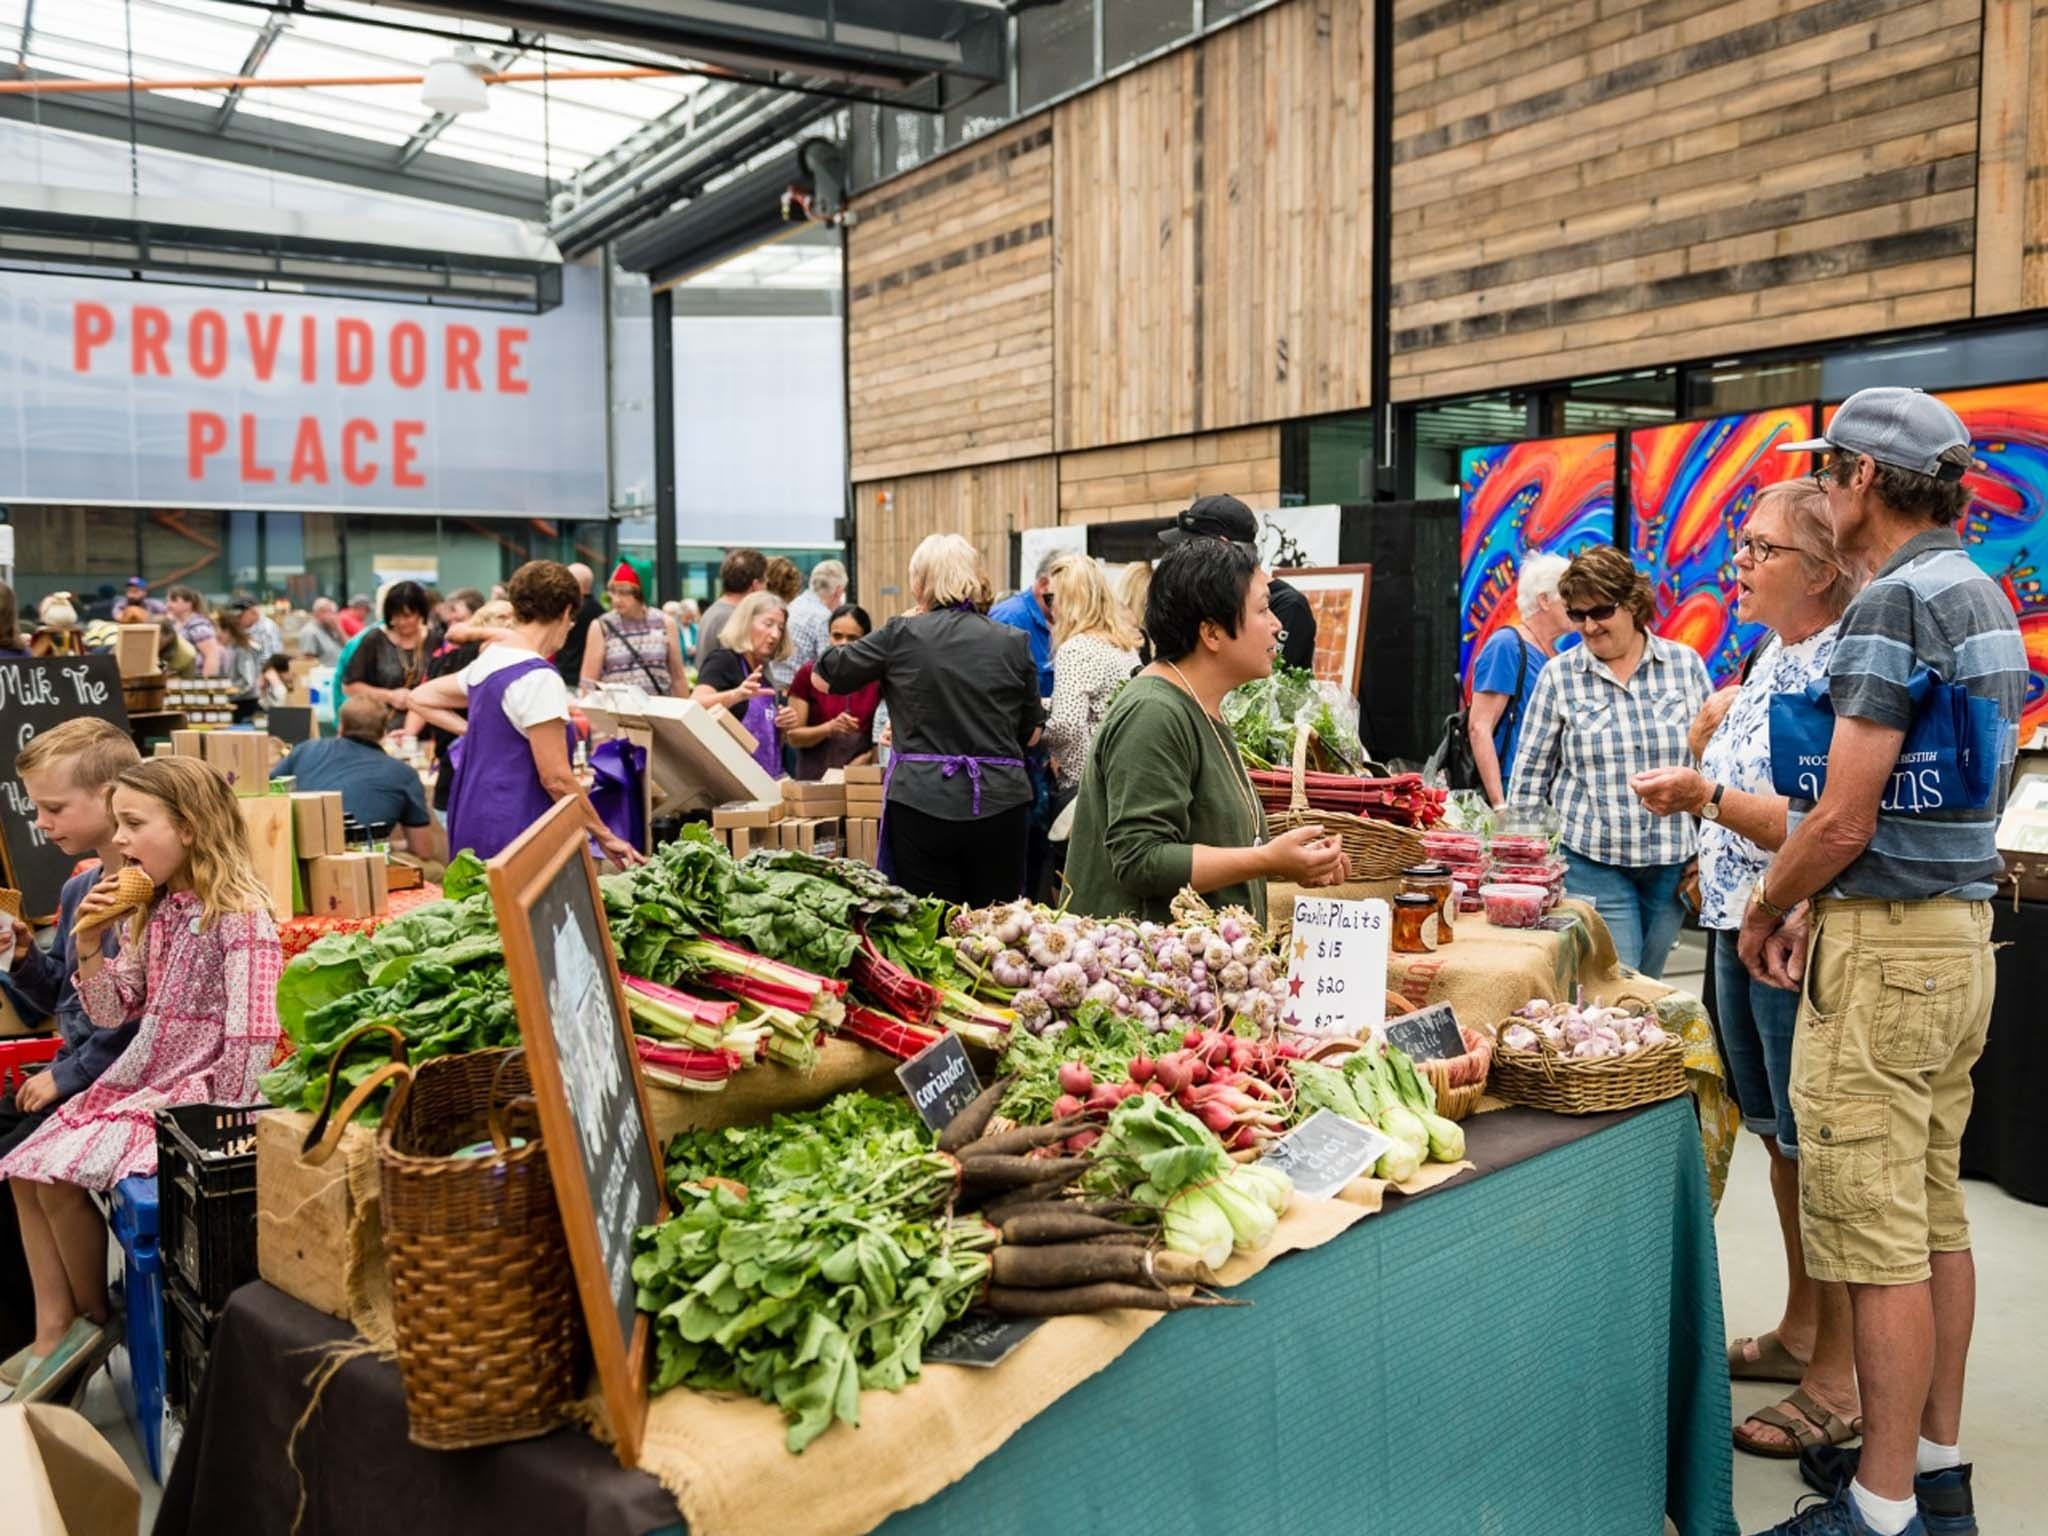 Providore Market - Australia Accommodation